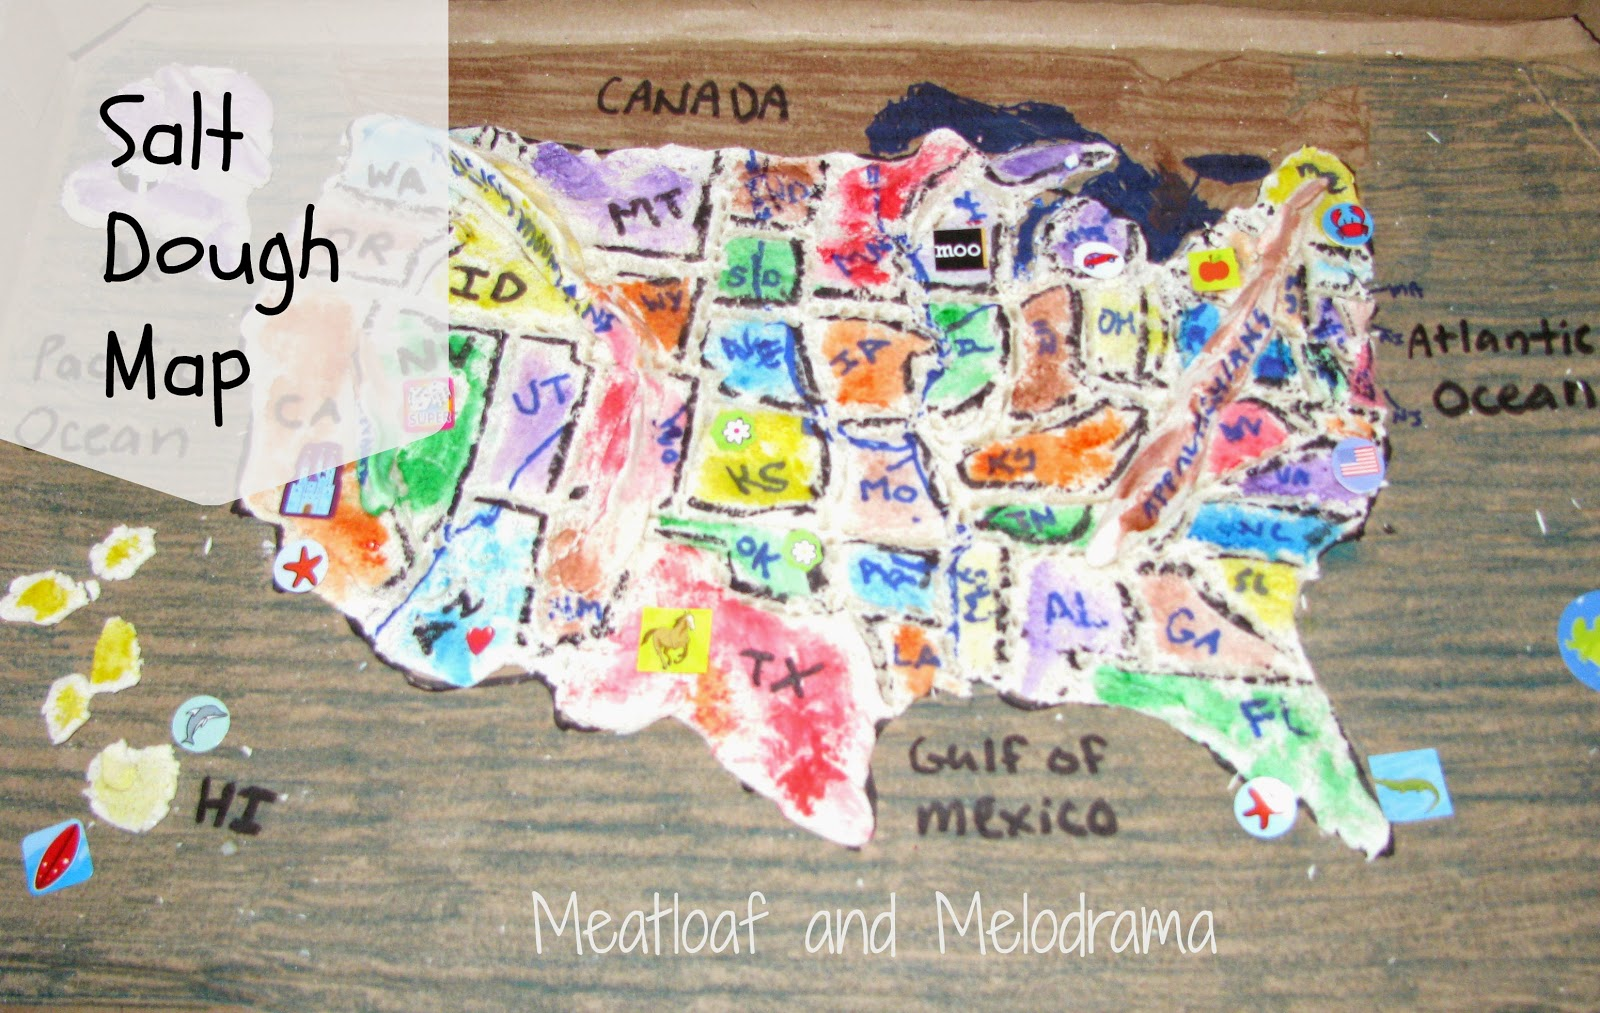 Salt Dough Maps - Meatloaf and Melodrama